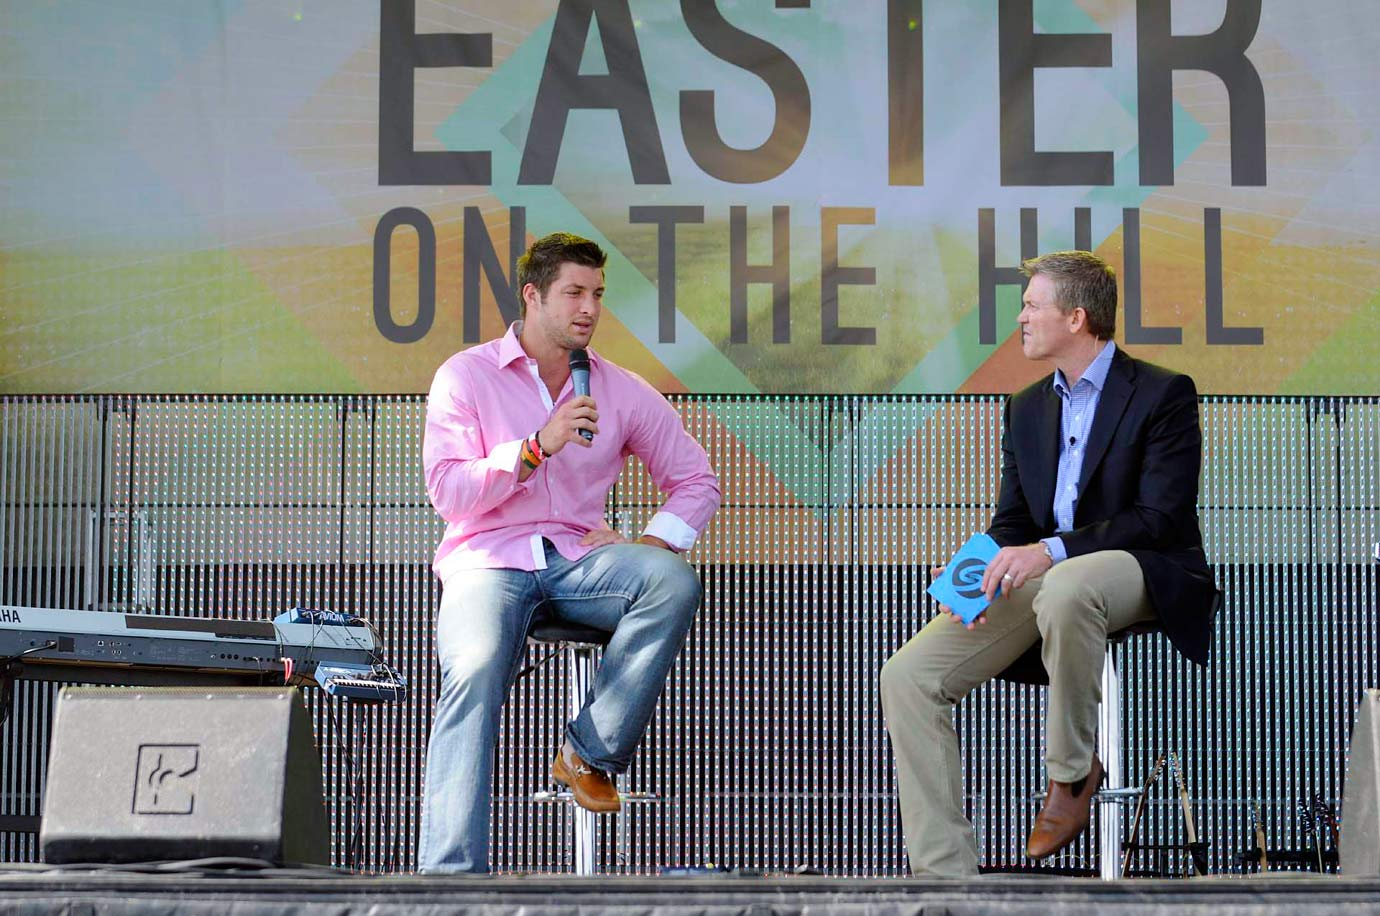 In April, a crowd of nearly 15,000 gathered at an outdoor Easter church service in Georgetown, Texas to hear Tim Tebow deliver a sermon at an outdoor service held by the Celebration Church.